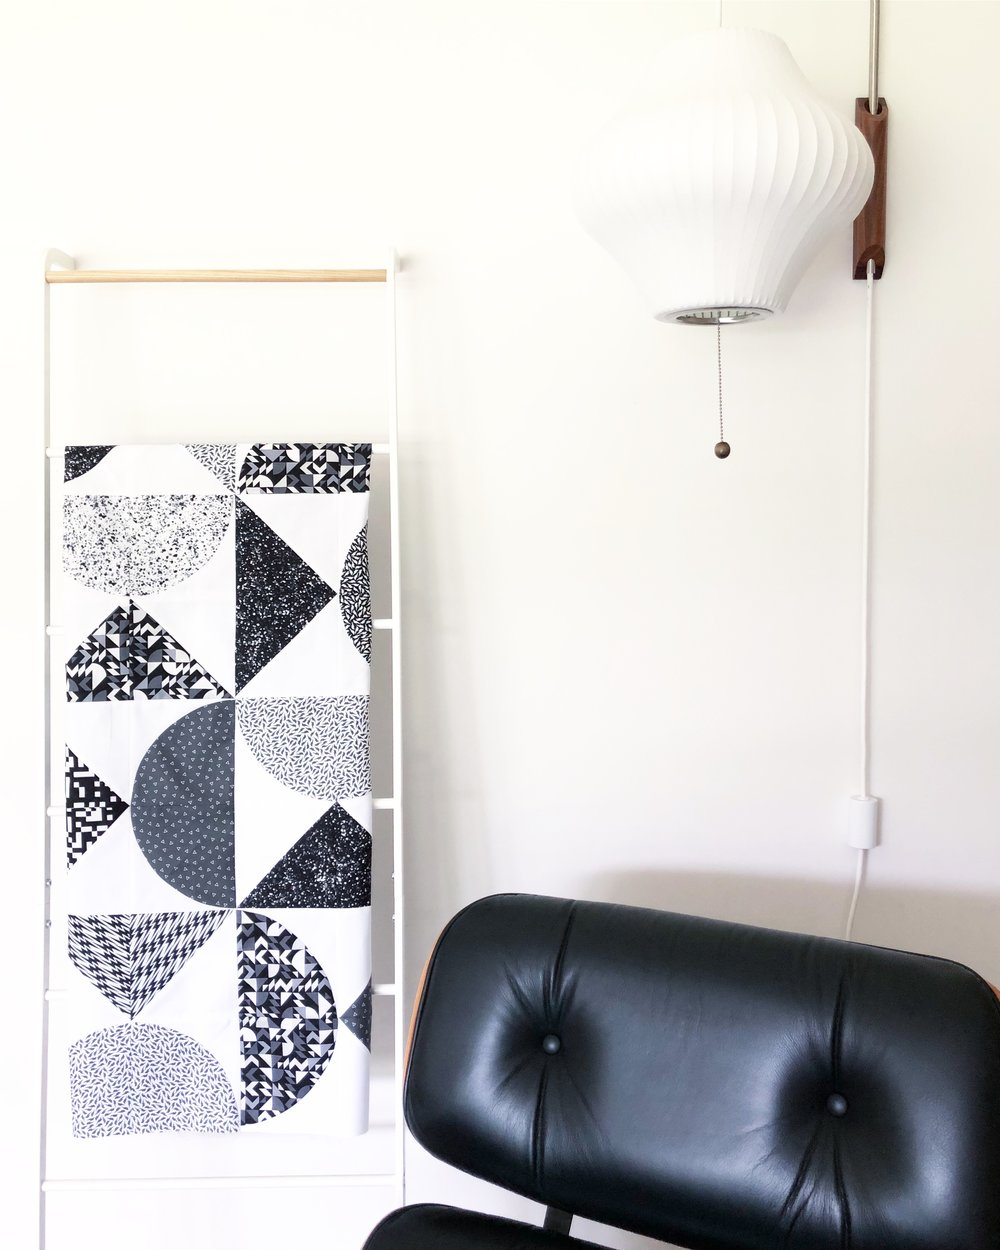 Pivot - Featuring fabric by Libs Elliot for Andover fabrics. I love how the black and white creates such a graphic punch. The pattern also compliments the design of the print with curves and sharp lines.